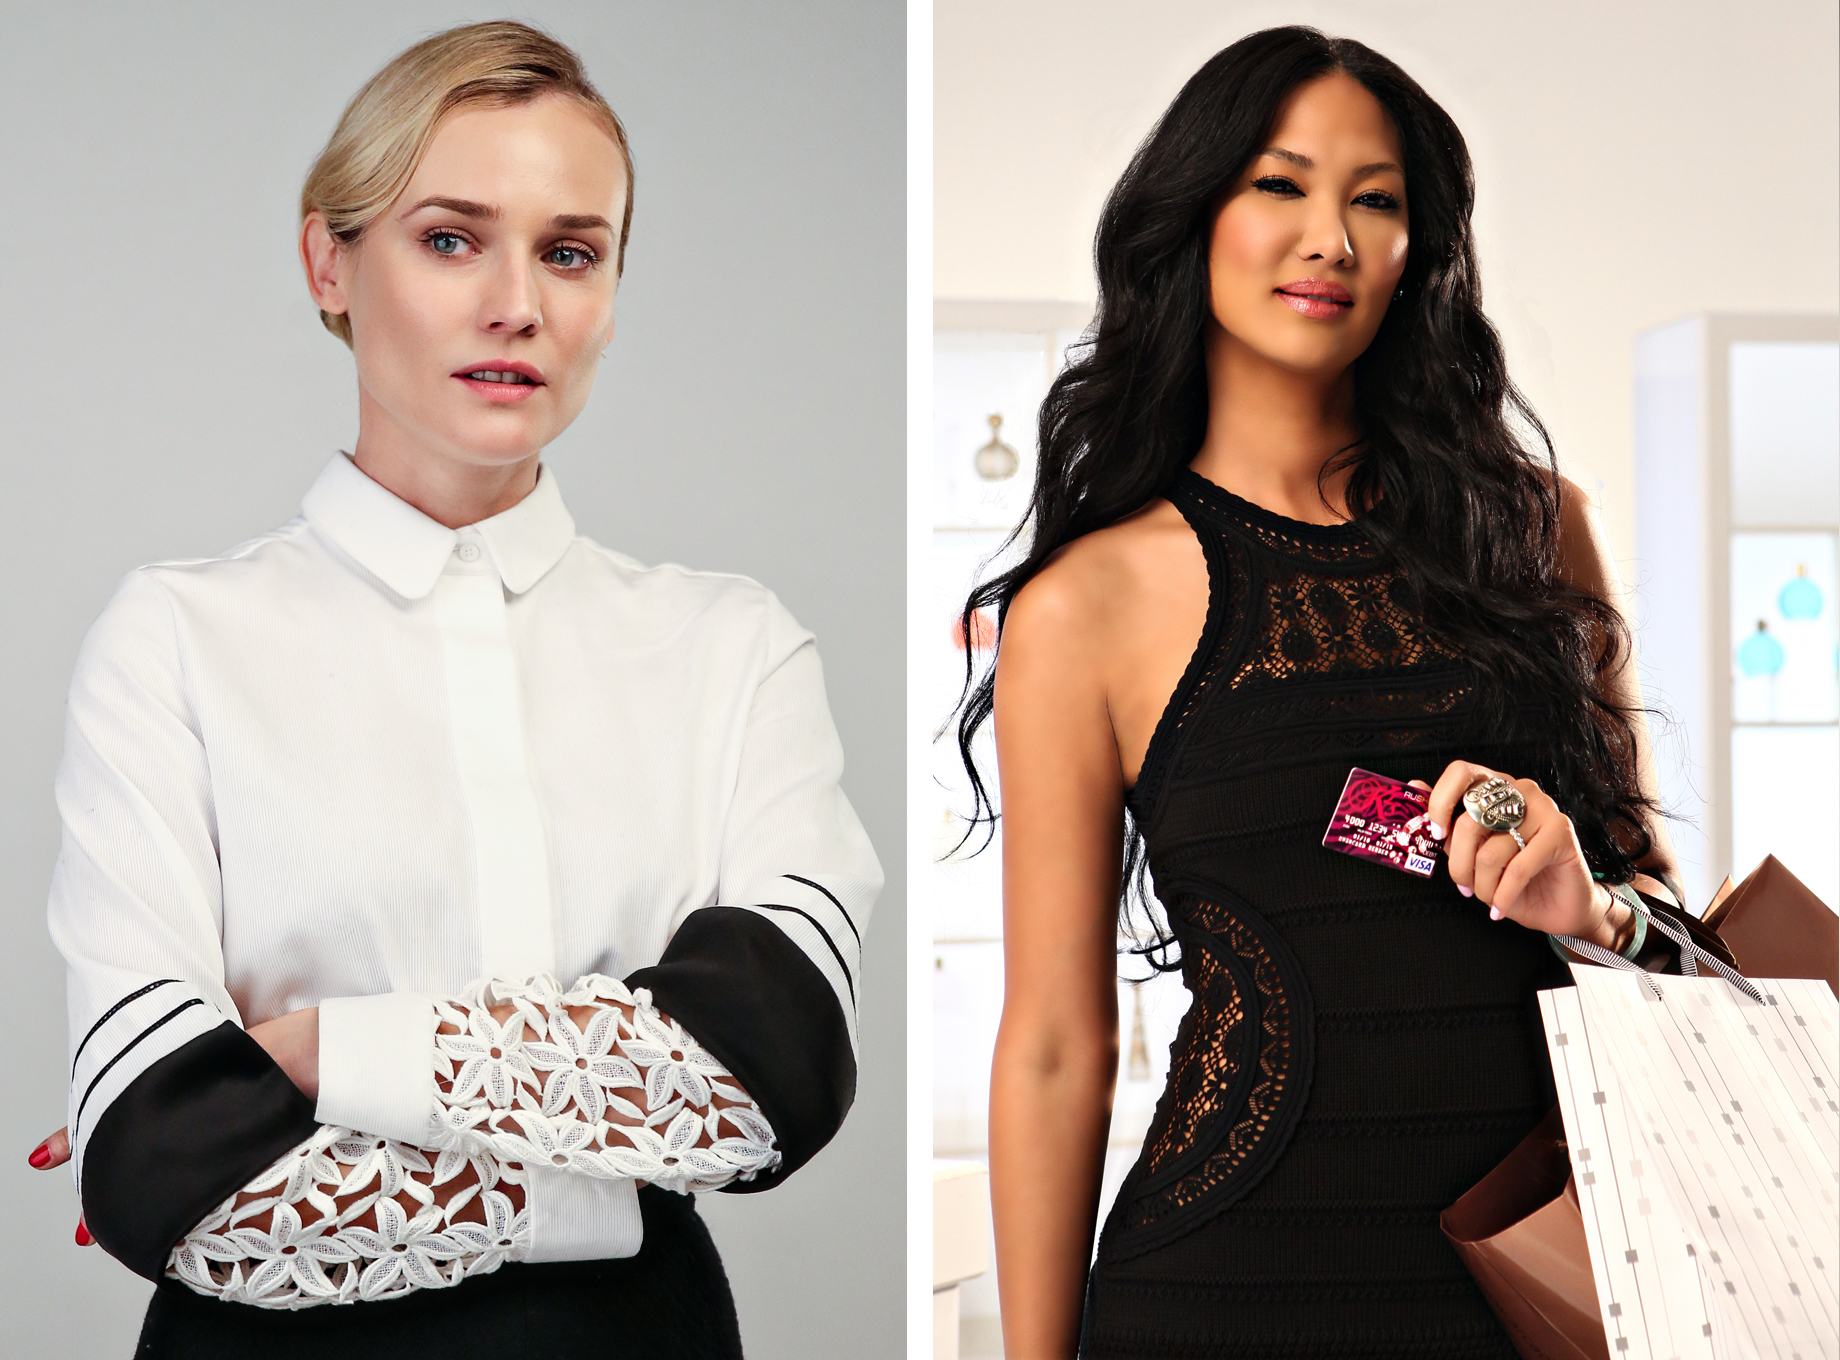 Diane Kruger and Kimora Lee Simmons